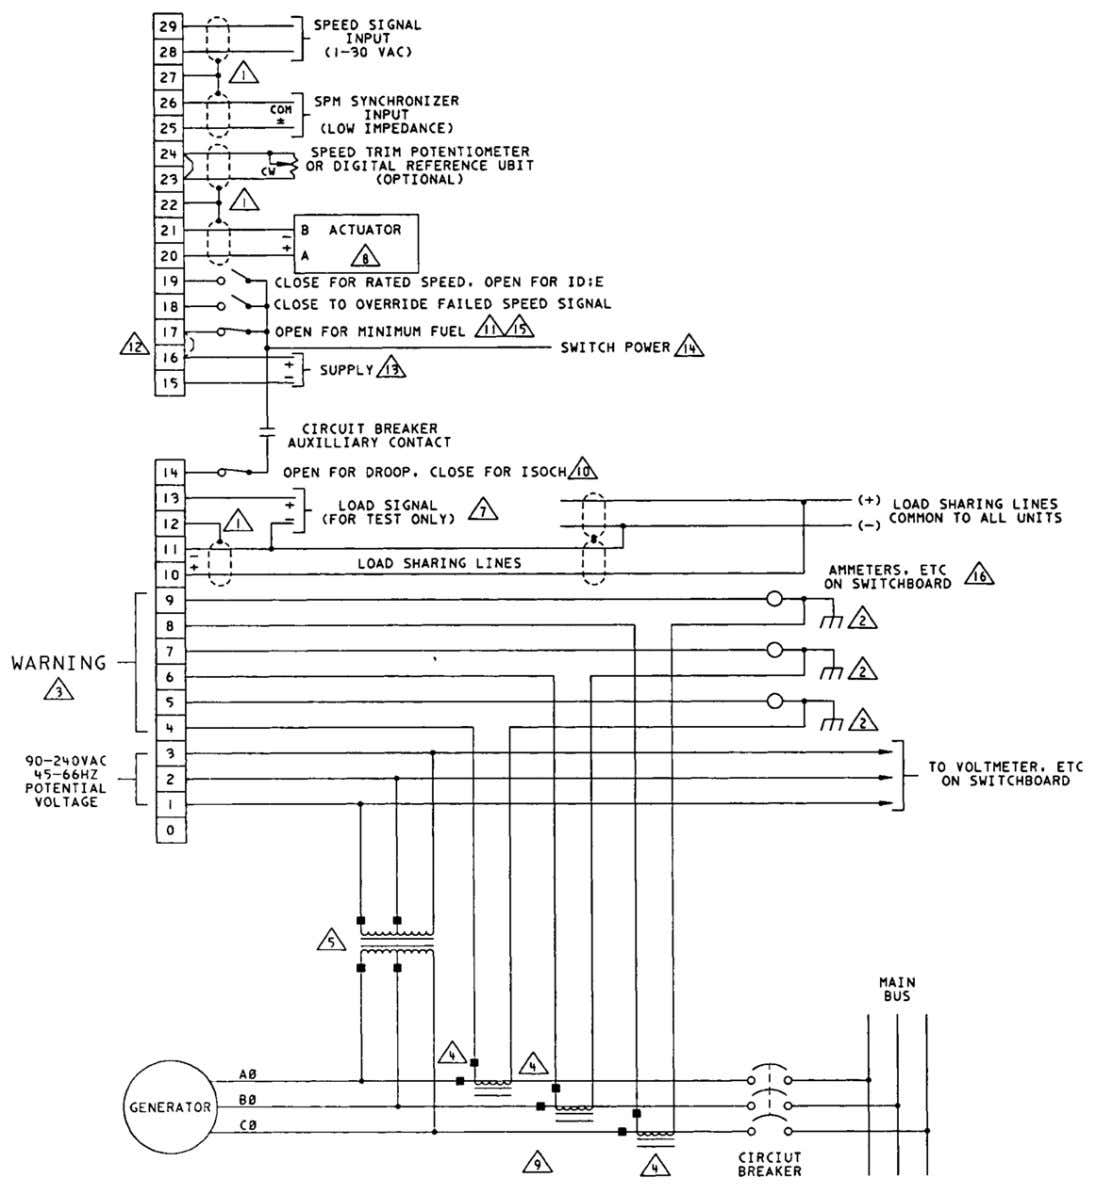 Manual 82046 2301A LSSC with Dual Dynamics Figure 2-3. Plant Wiring Diagram Woodward 11